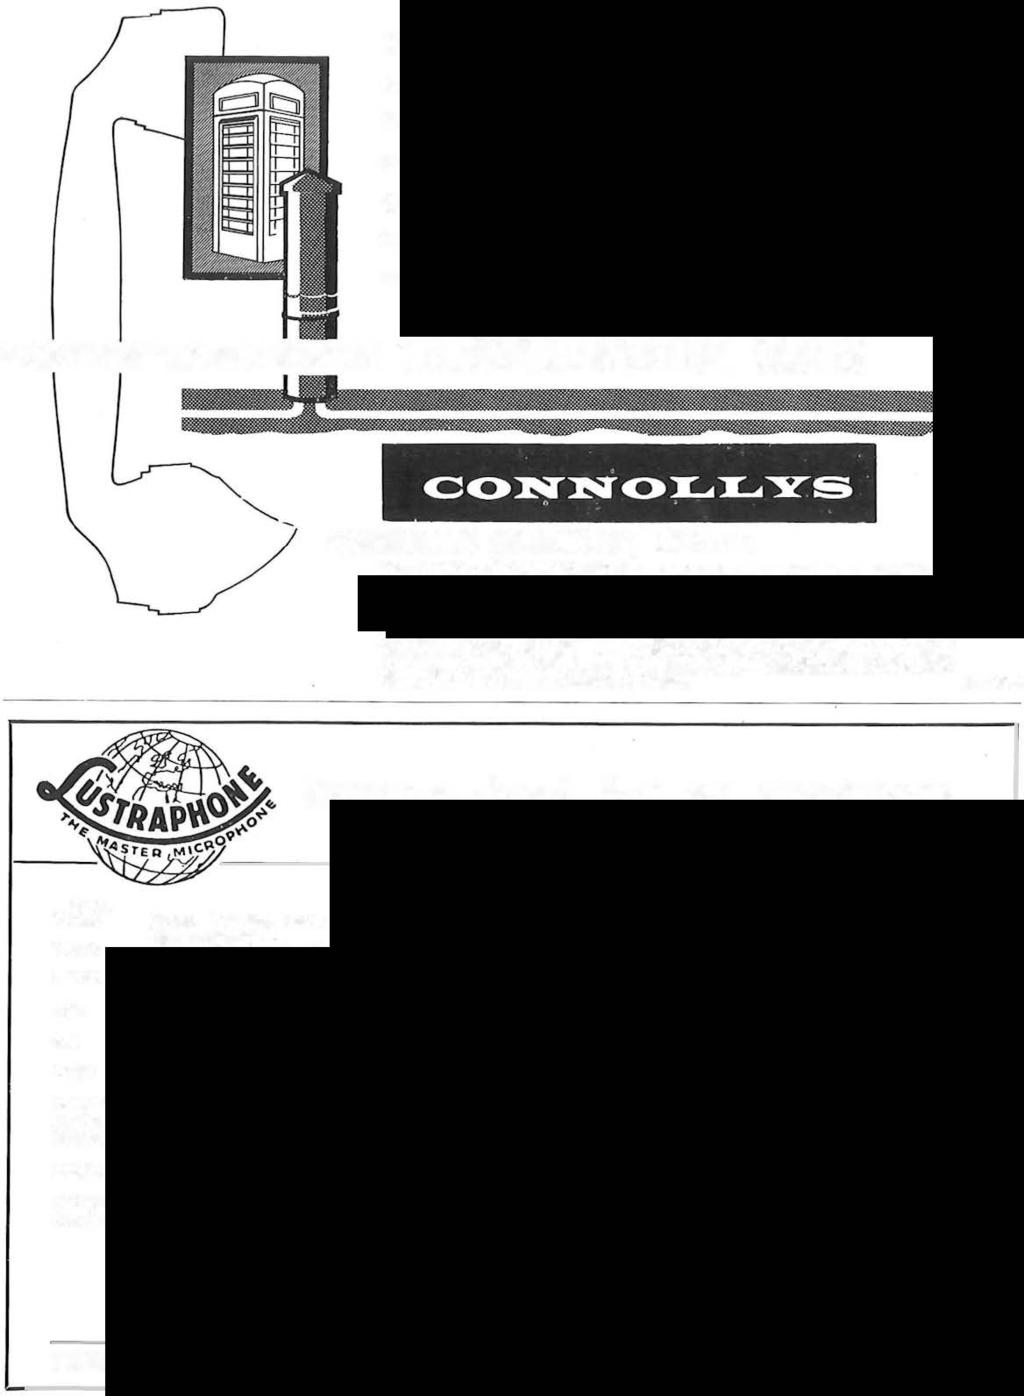 Connollys telecommunication cables are renowned throughout the world where they are providing reliable communications. Their outstanding qualities are detailed concisely in publication B.11 A.